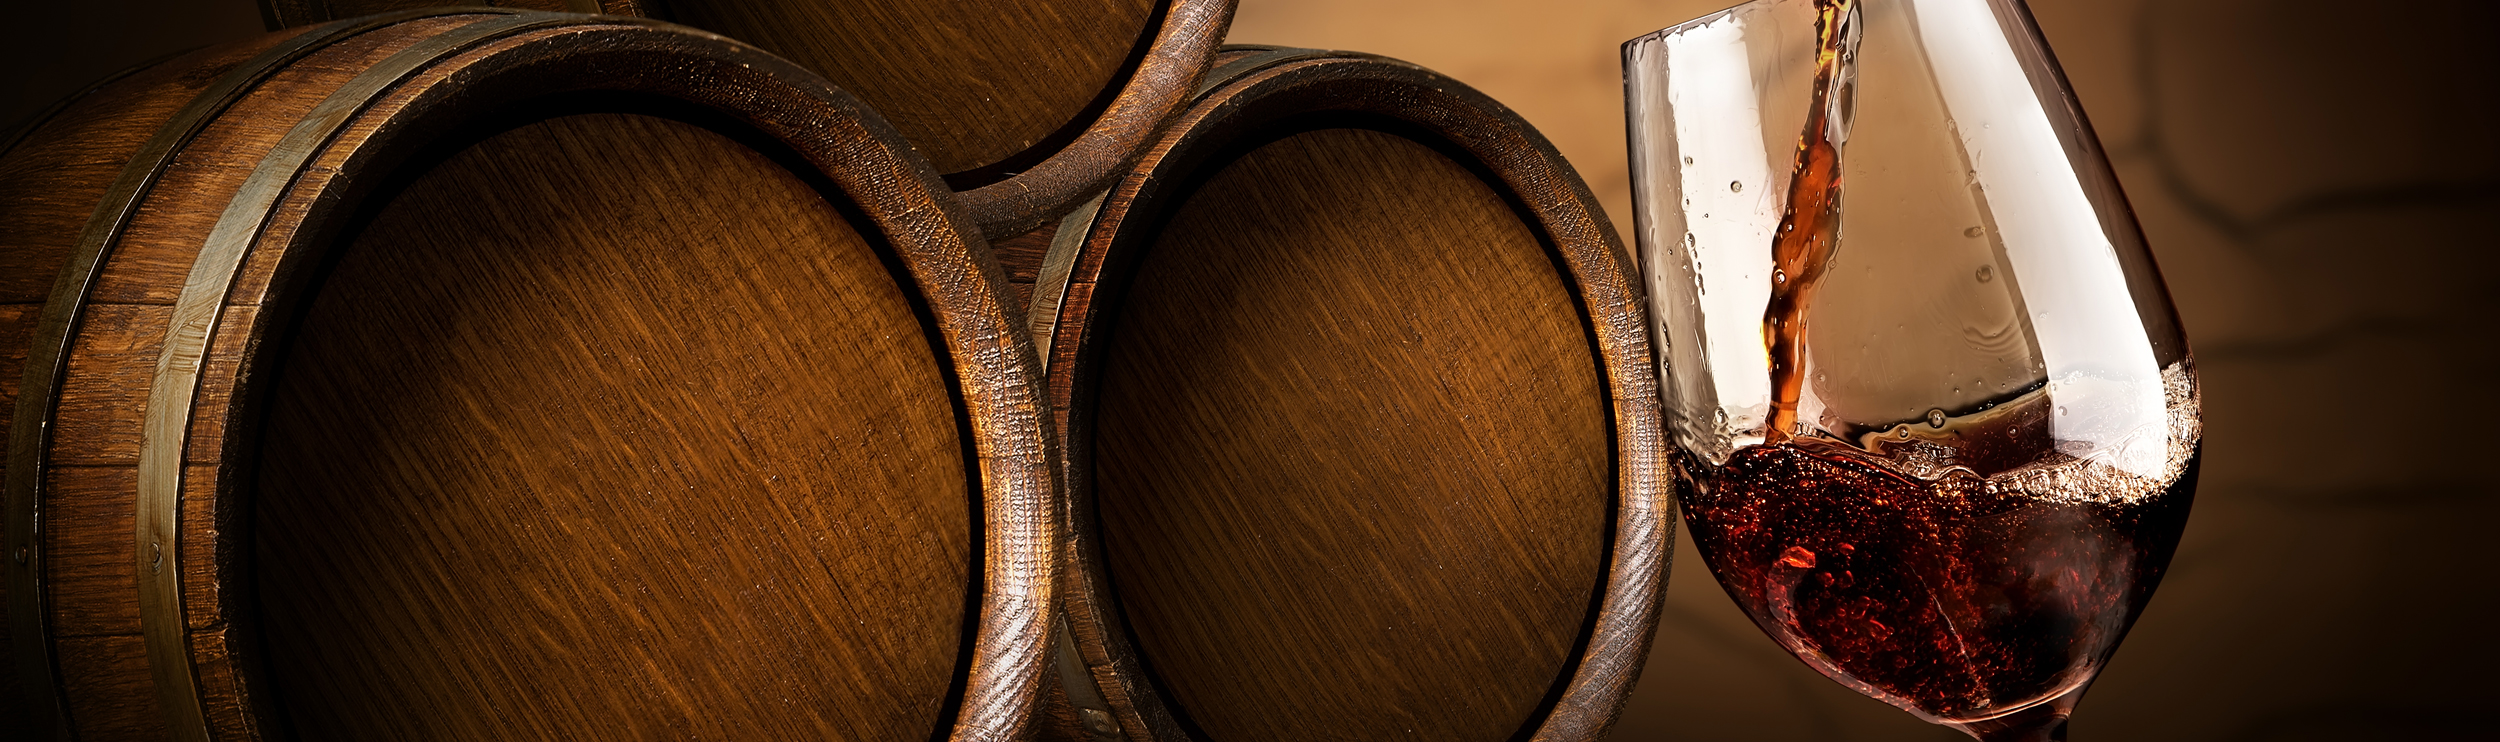 Wine Glass and Barrels